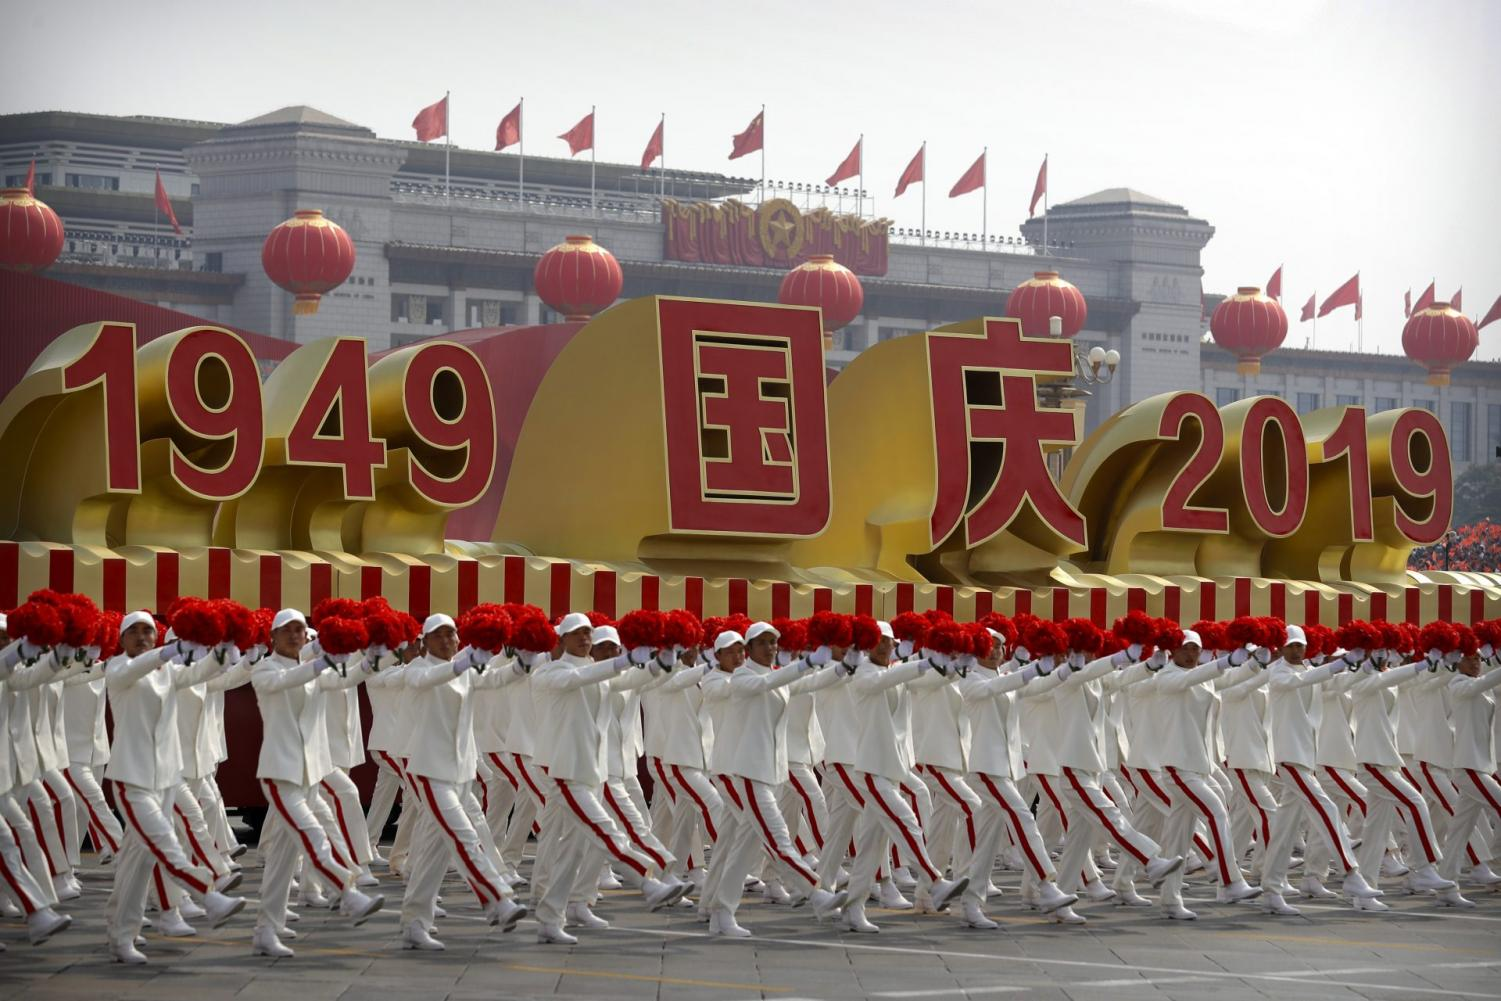 Participants wave flowers as they march next to a float commemorating the 70th anniversary of the founding of Communist China during a parade in Beijing, Tuesday, Oct. 1, 2019.